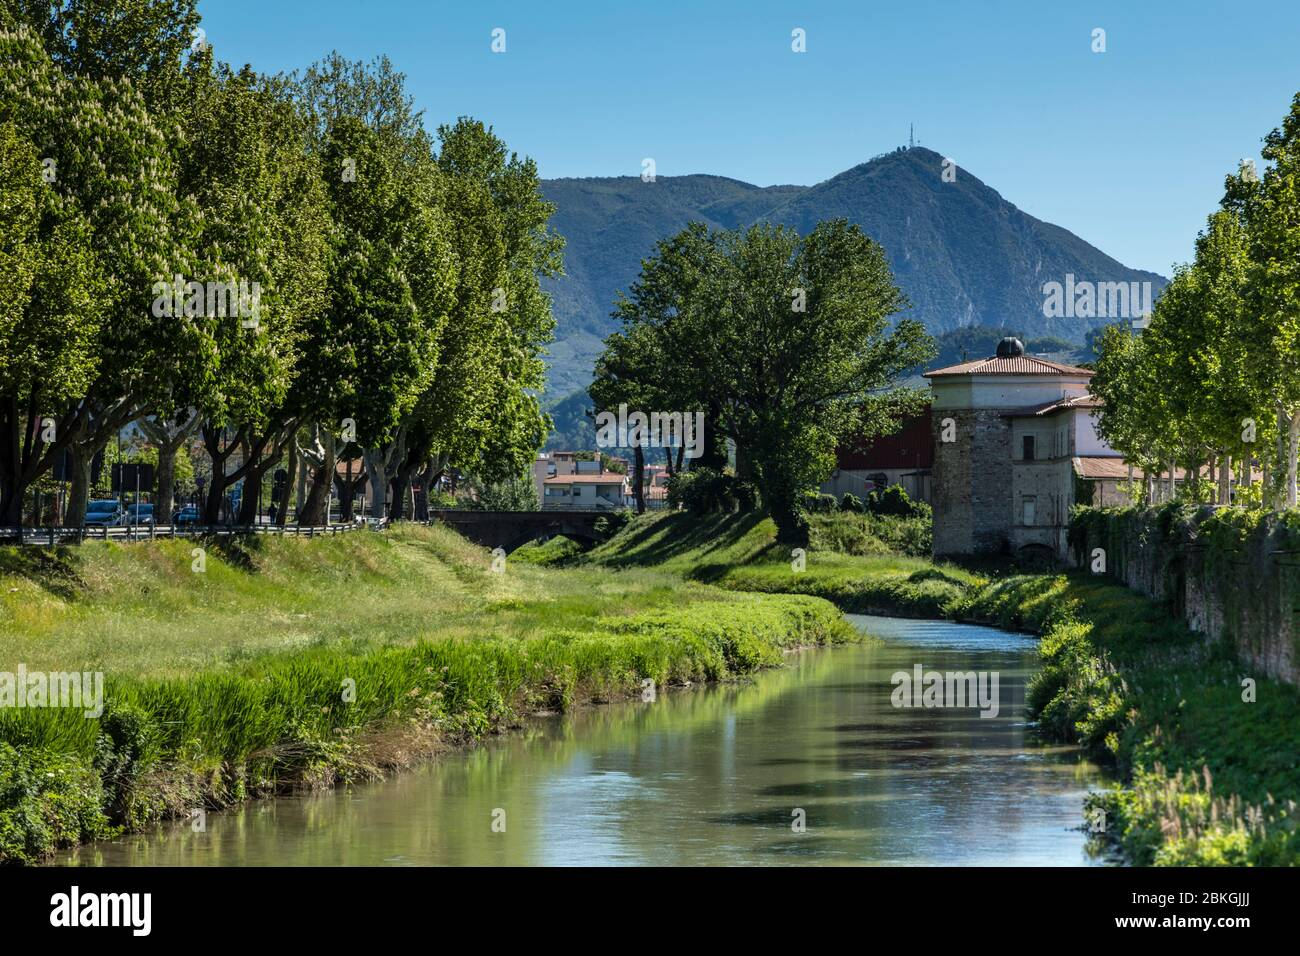 The Topino river, on the outskirts of Foligno, cuts through the Umbrian countryside with the Apennines in the distance, Italy Stock Photo